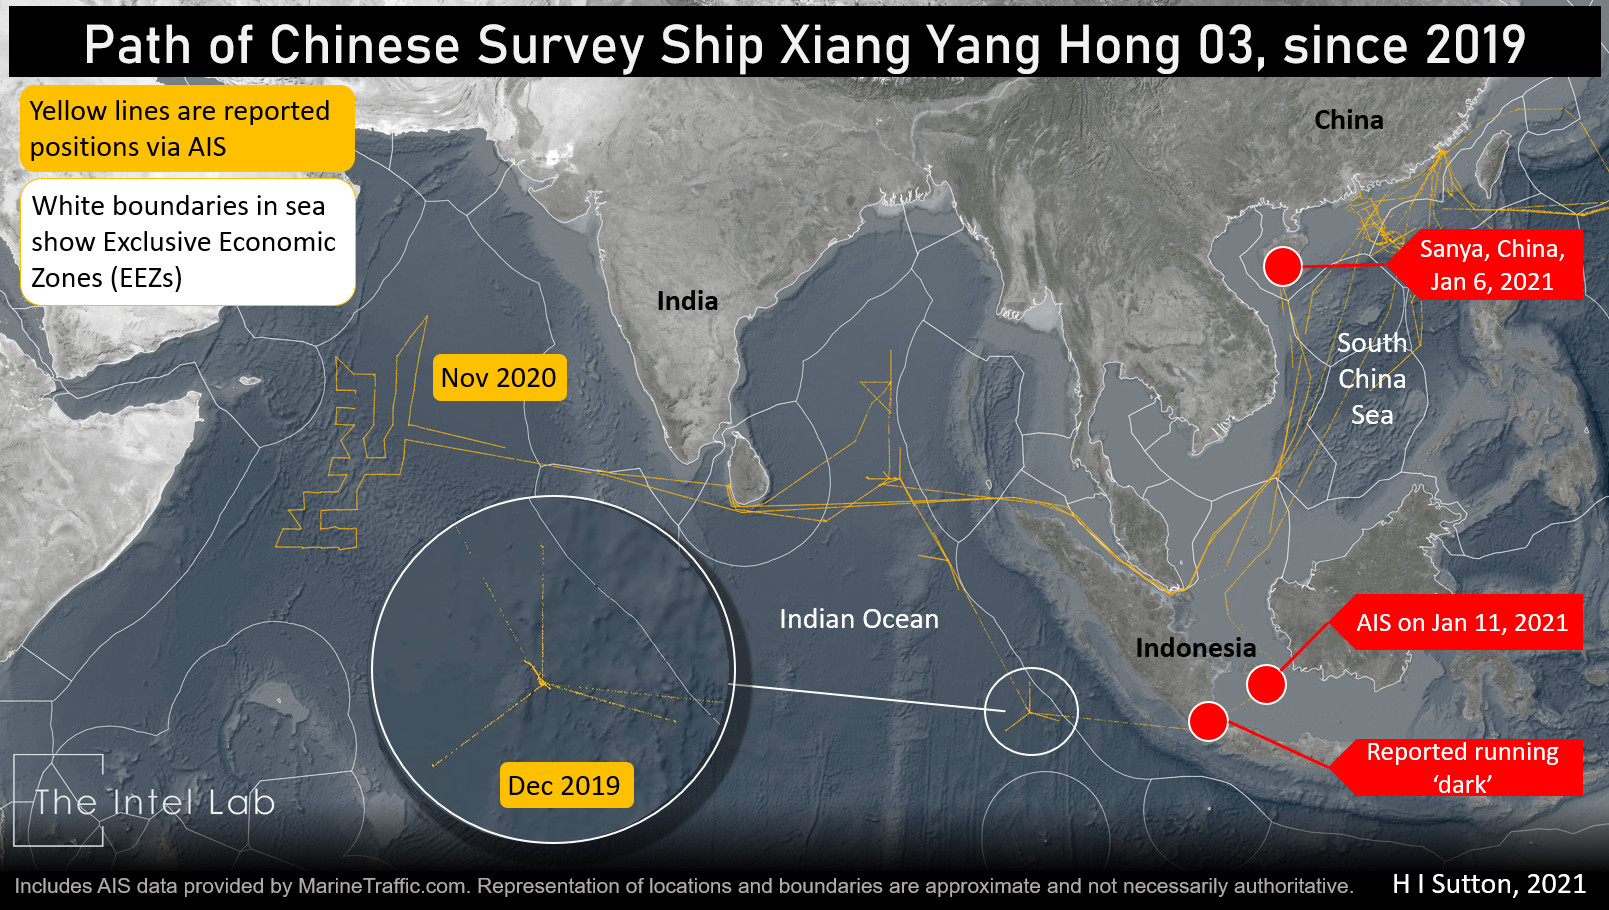 Chinese Survey Ship Caught 'Running Dark' Give Clues to Underwater Drone Operations - USNI News